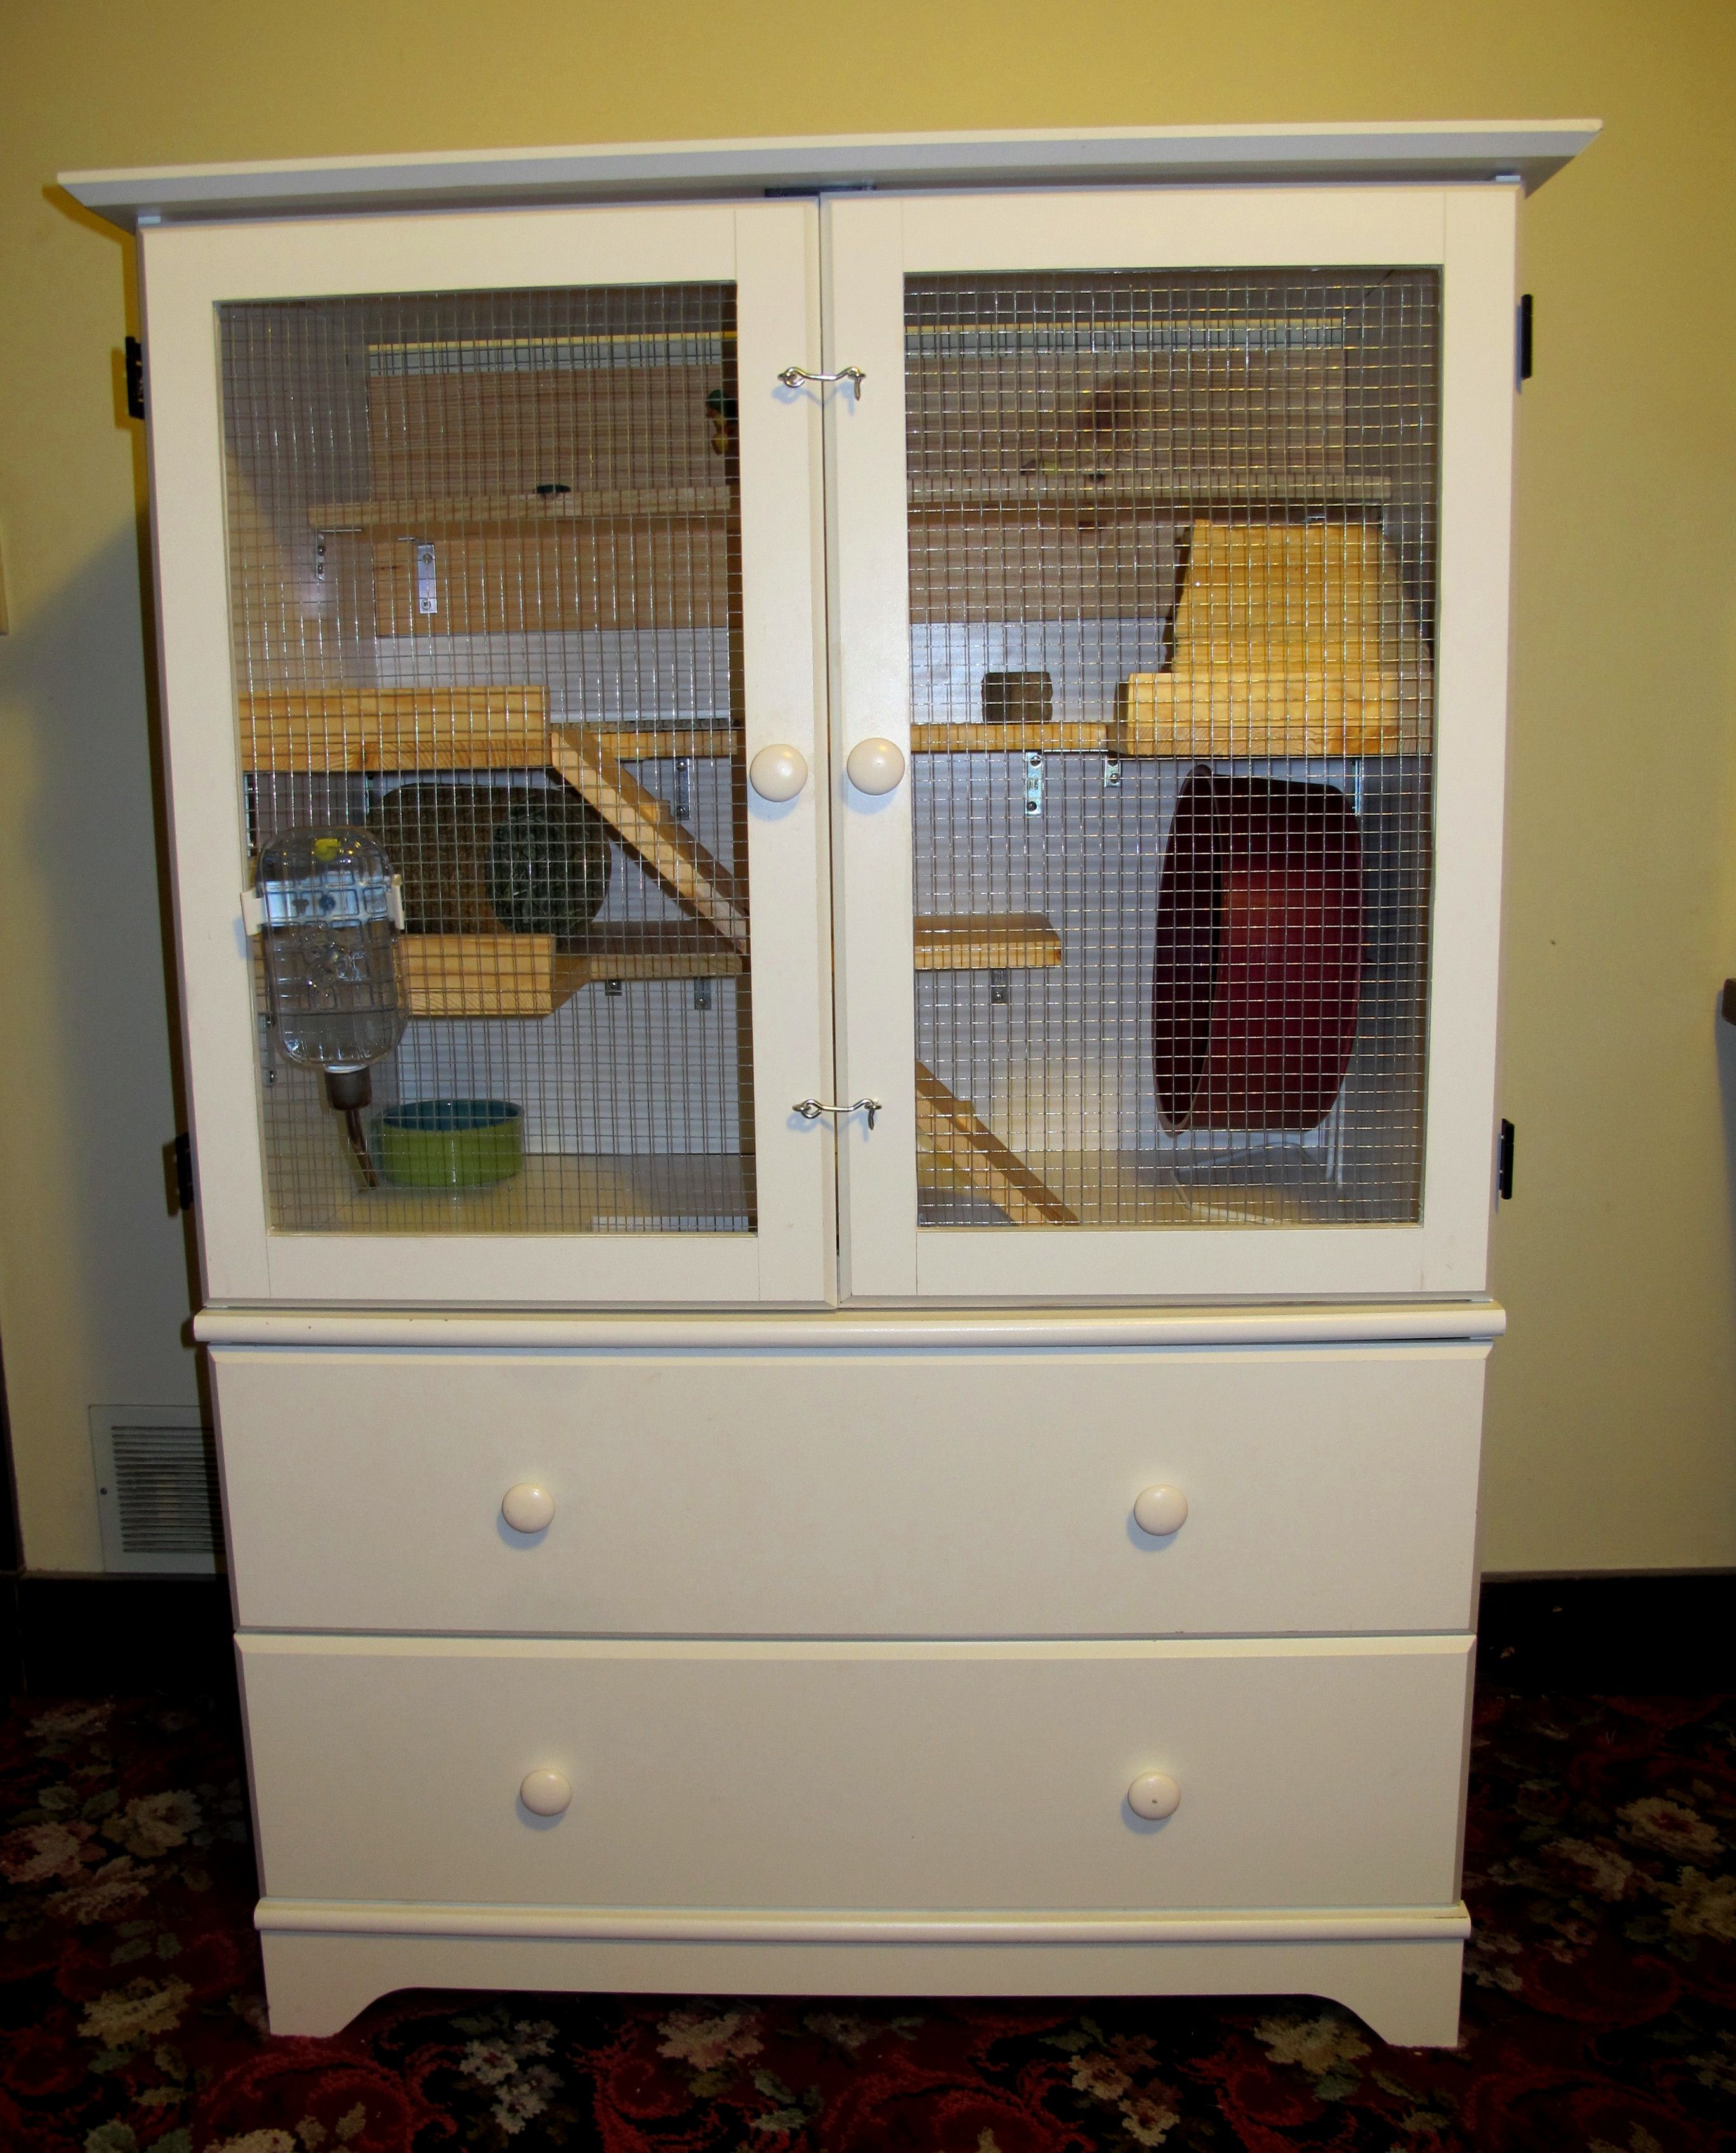 Diy Cage For Rabbit Best 25 43 Small Animal Cage Ideas On Pinterest Animal